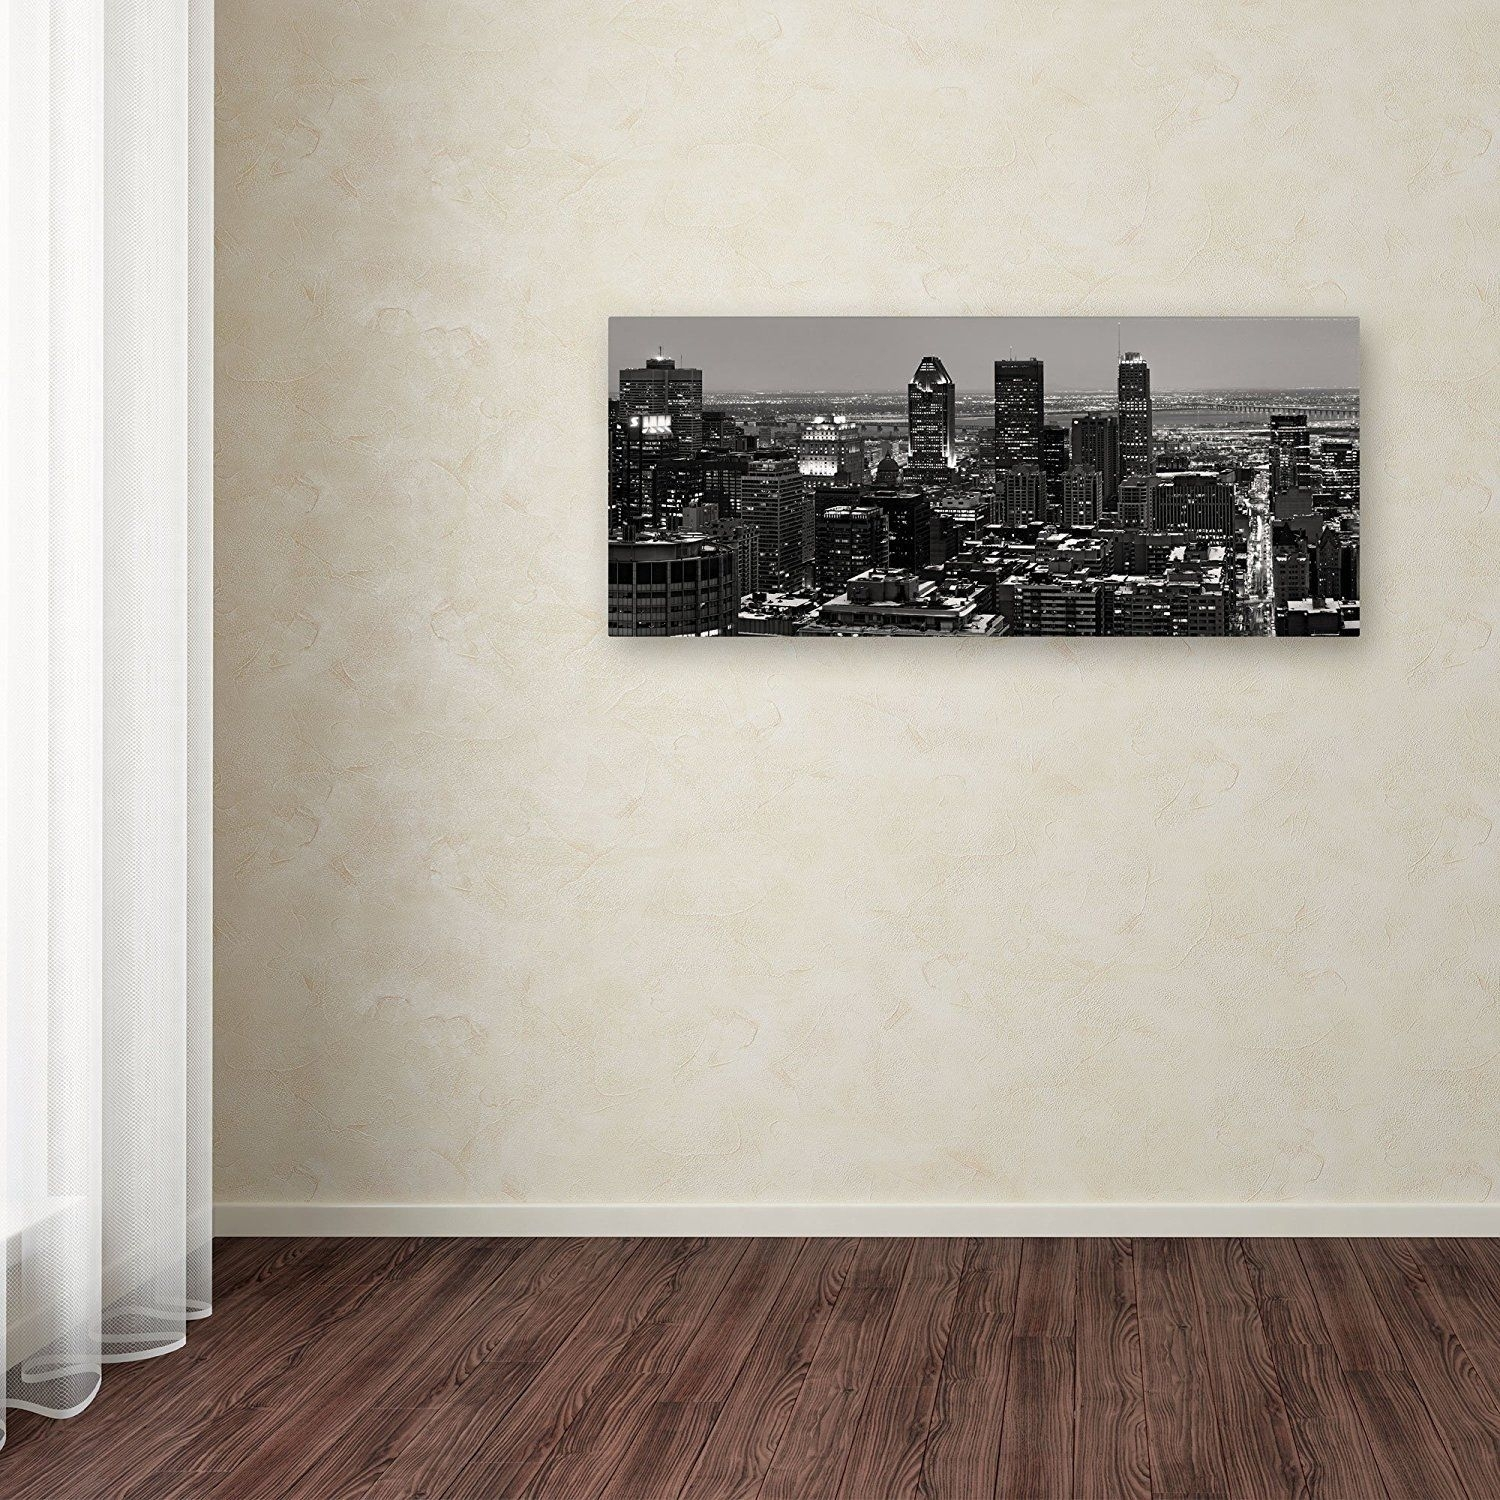 Pierre Leclerc 'montreal City' Canvas Wall Art 10 X 19 | Ebay With 2018 Montreal Canvas Wall Art (View 9 of 15)